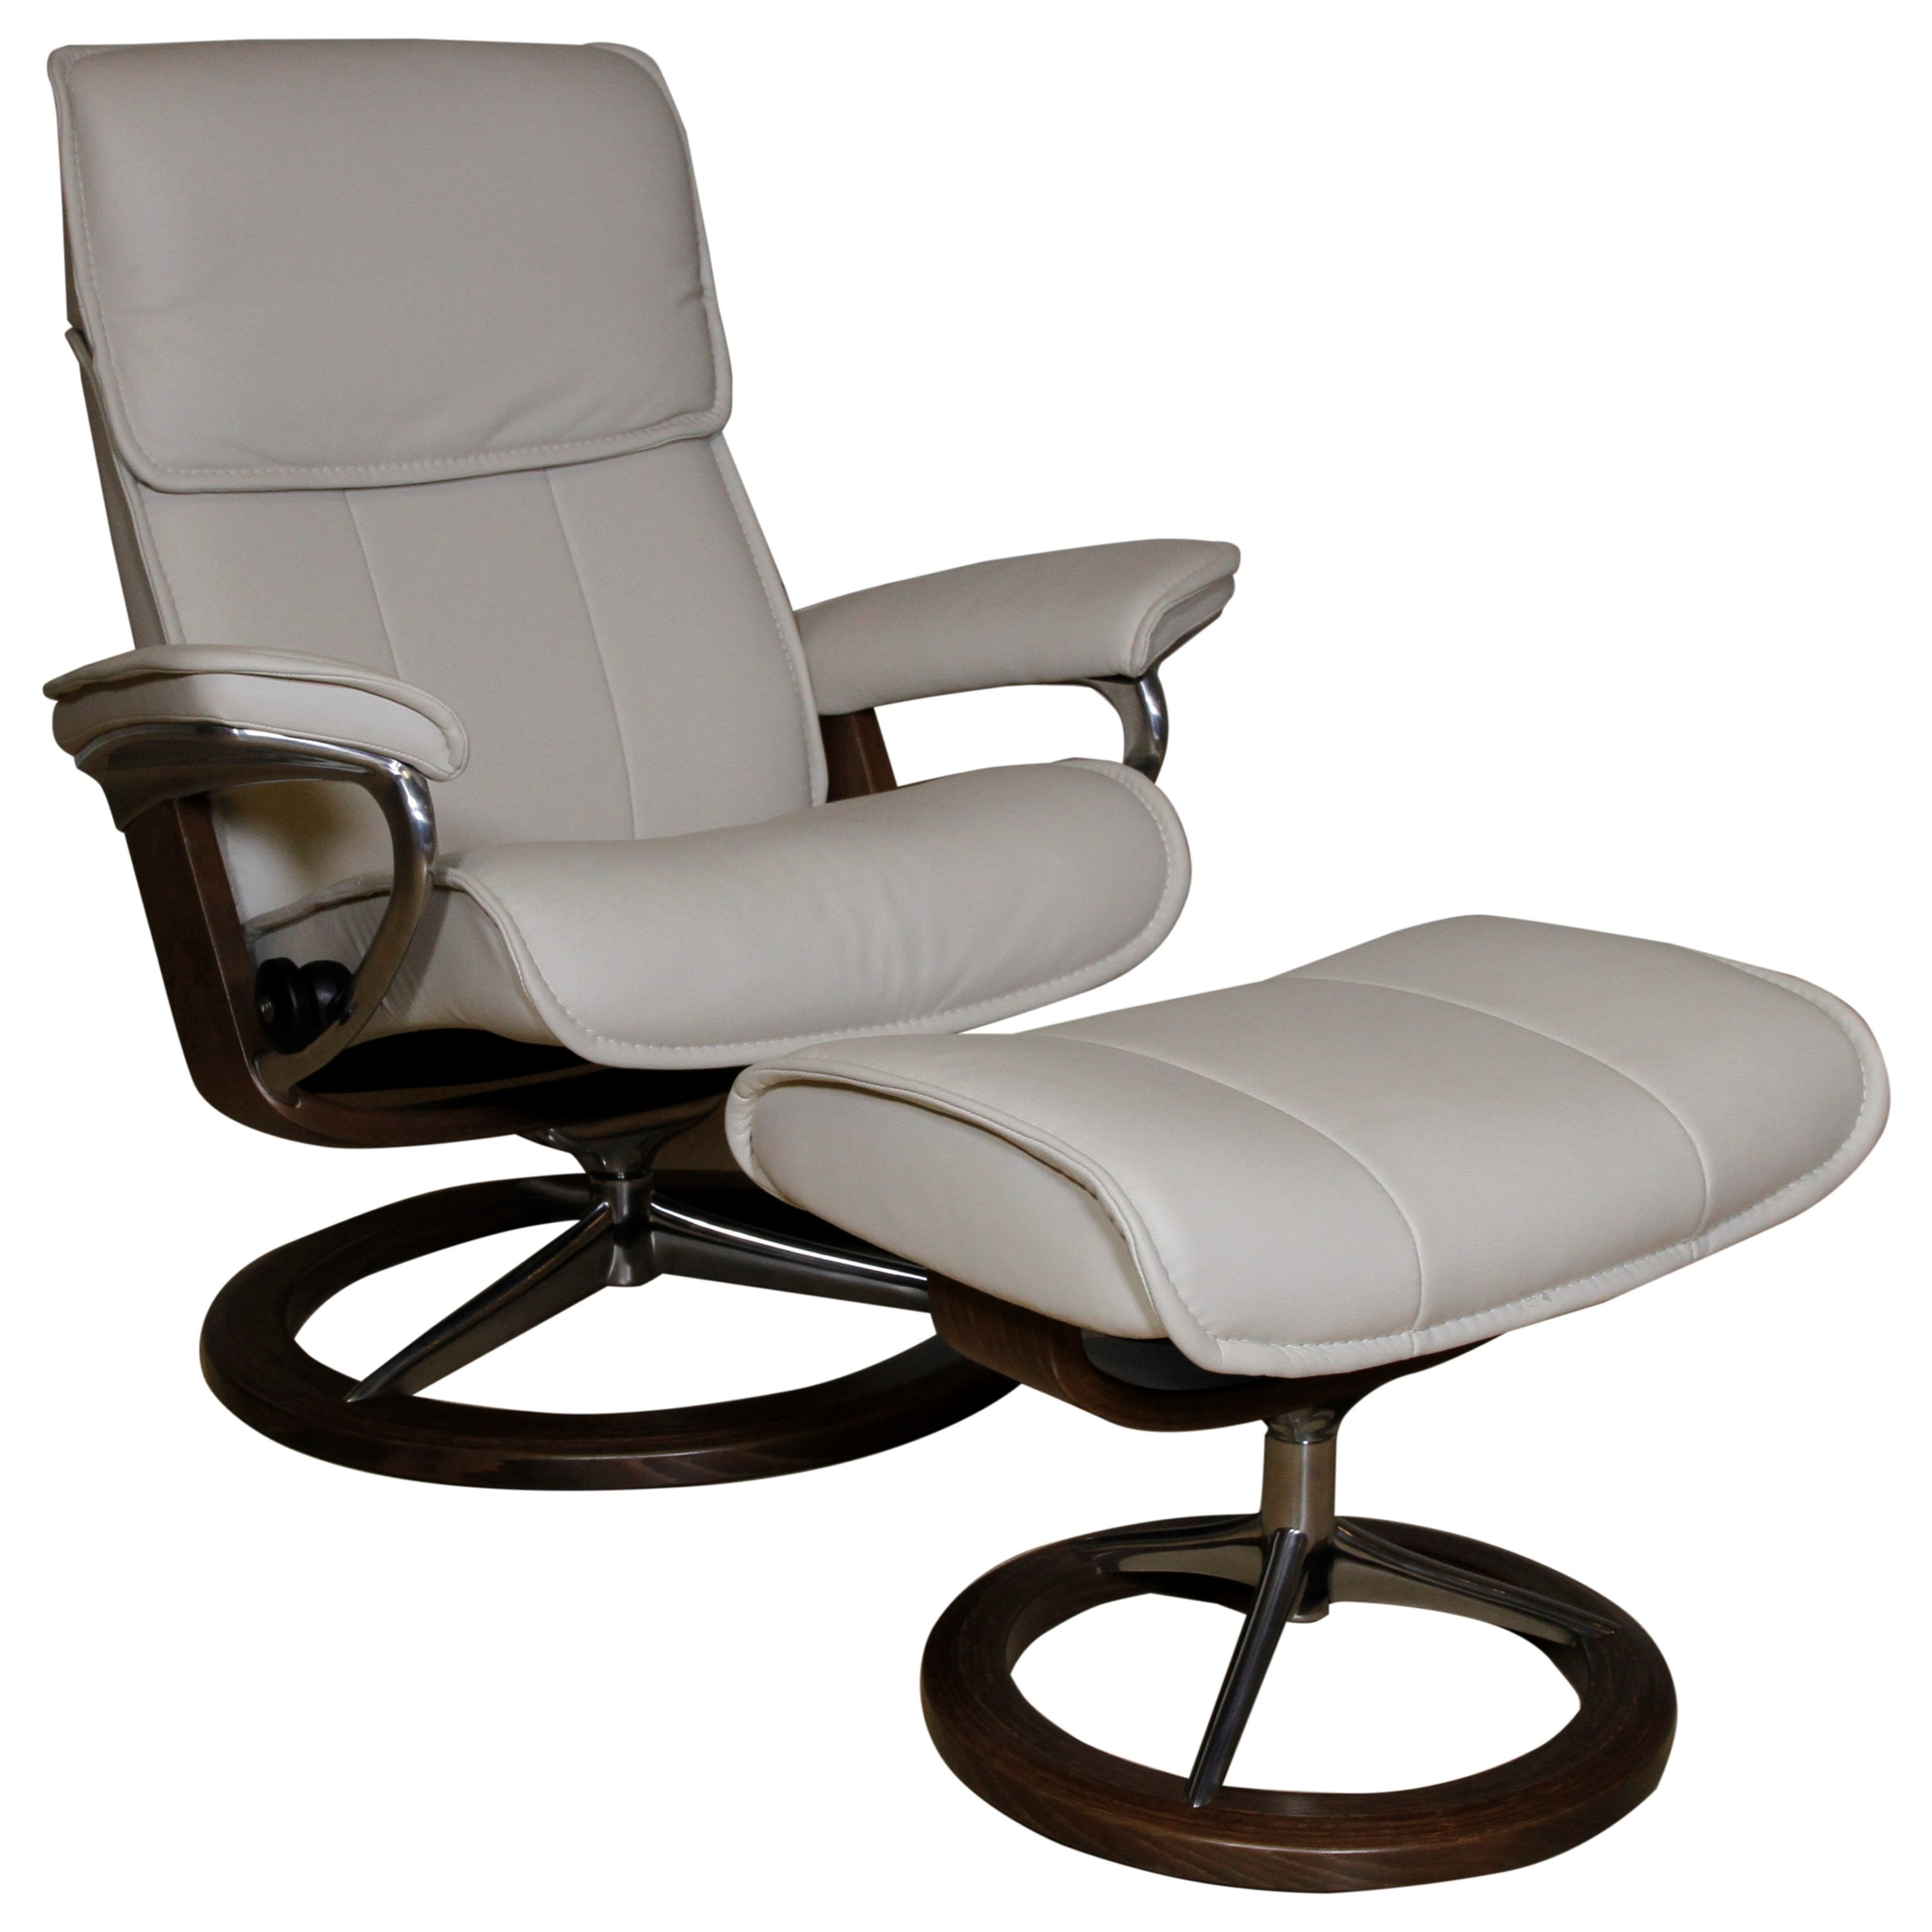 Admiral Large Reclining Chair and Ottoman by Stressless at Fashion Furniture